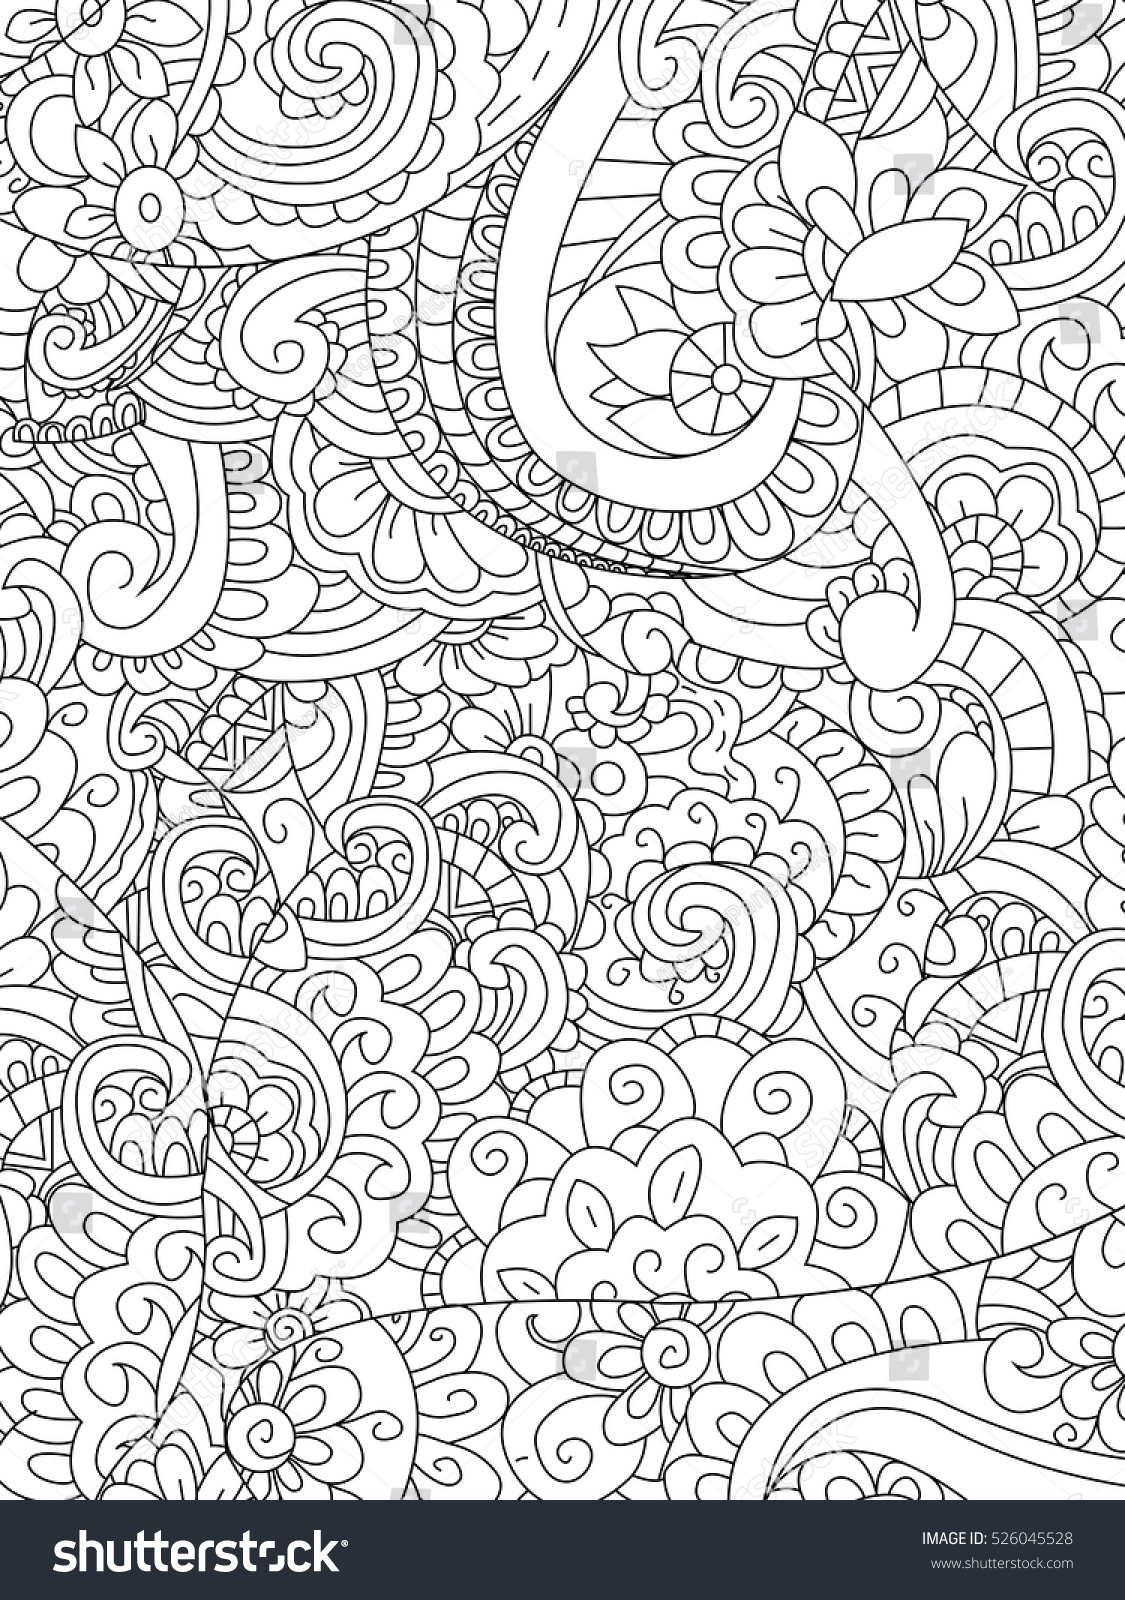 Coloring adults stress - Pattern Flower Coloring Book For Adults Vector Illustration Anti Stress Coloring For Adult